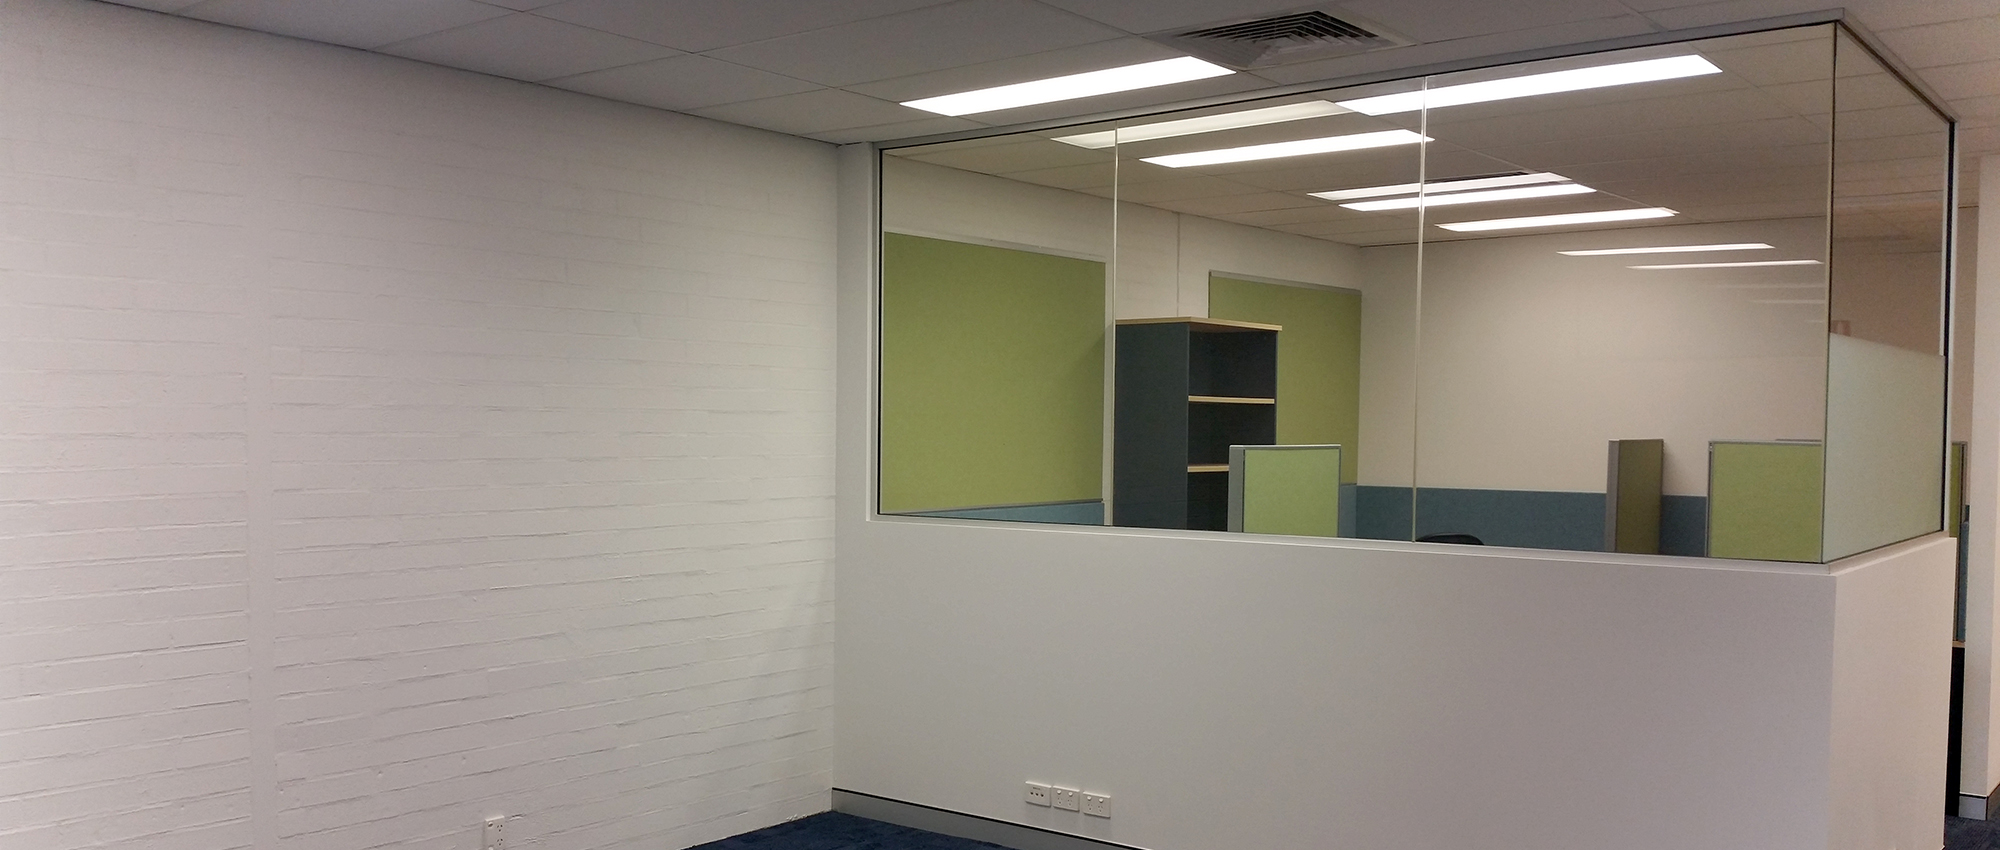 Office Plus Perth Make Good 01 Fit out Construction Design Demolition Office Fit out Office Furniture